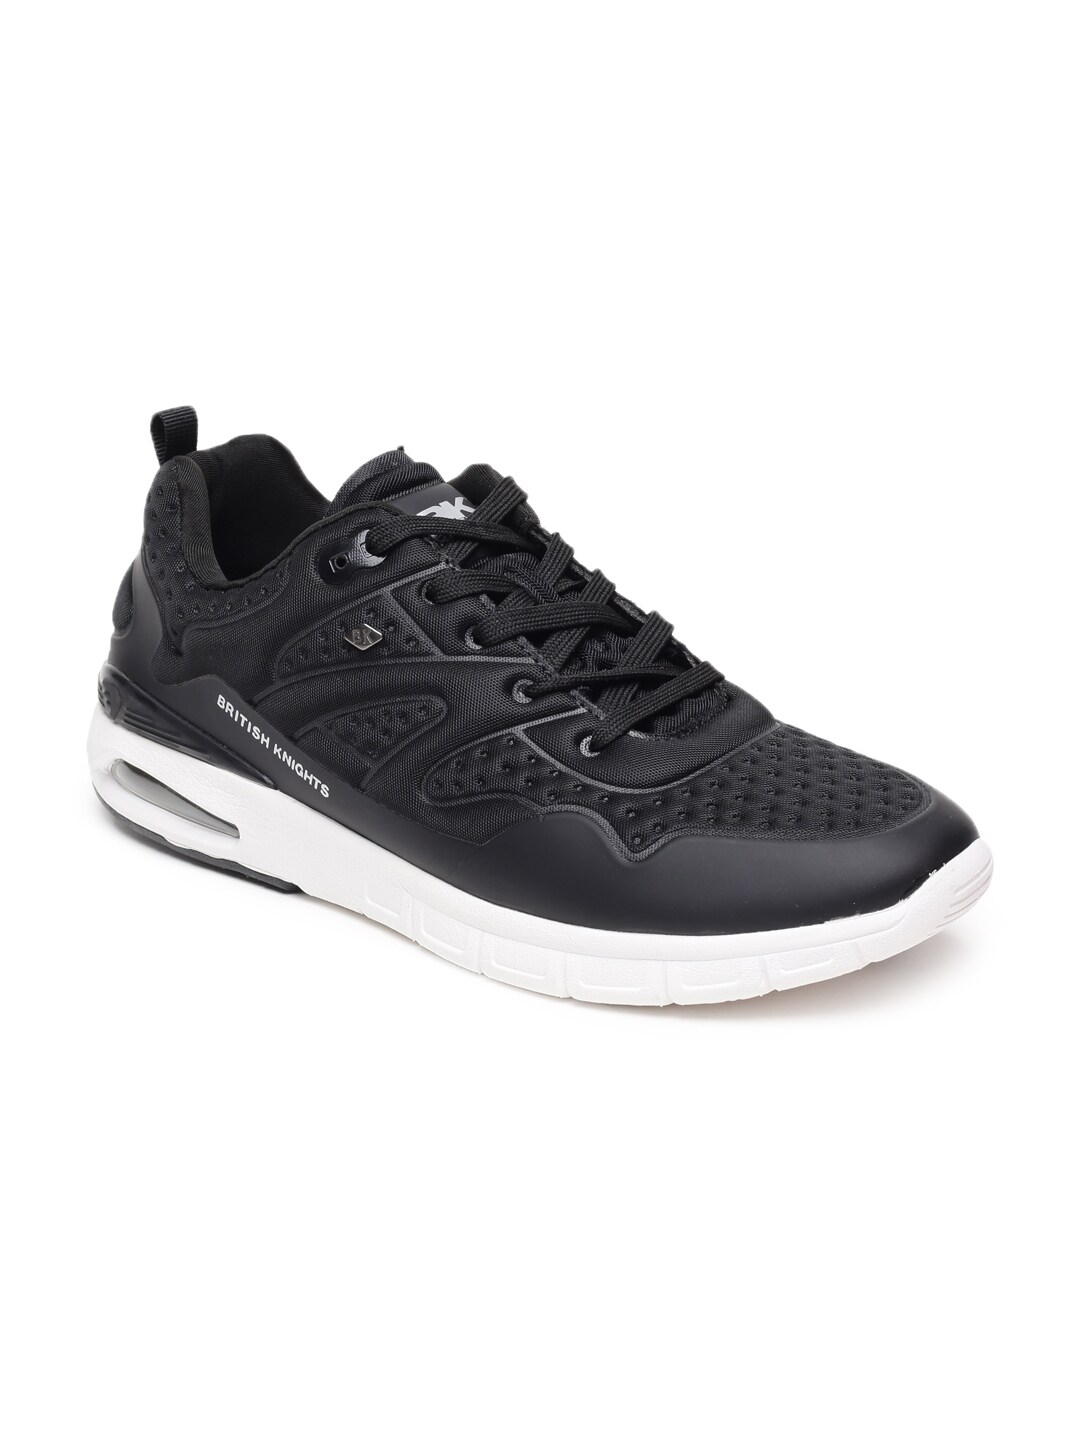 6116c52ee817 British Knights Casual Shoes - Buy British Knights Casual Shoes online in  India